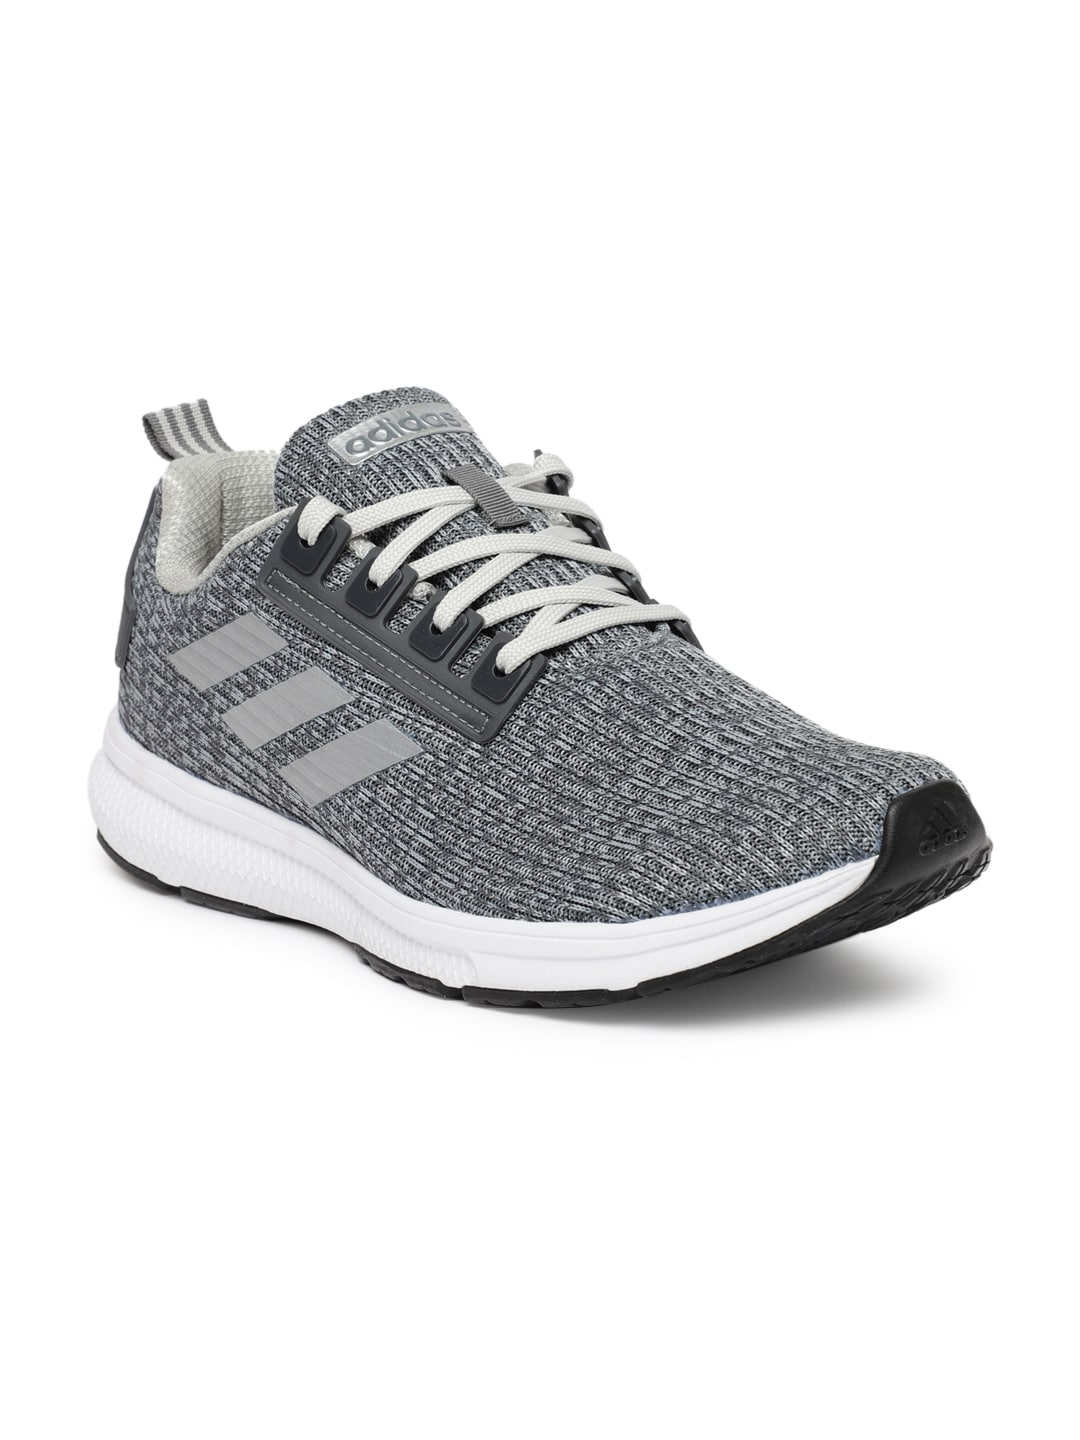 eb3c22ed7 Adidas Pureboost Zg Prime Grey Running Shoes for Men online in India ...